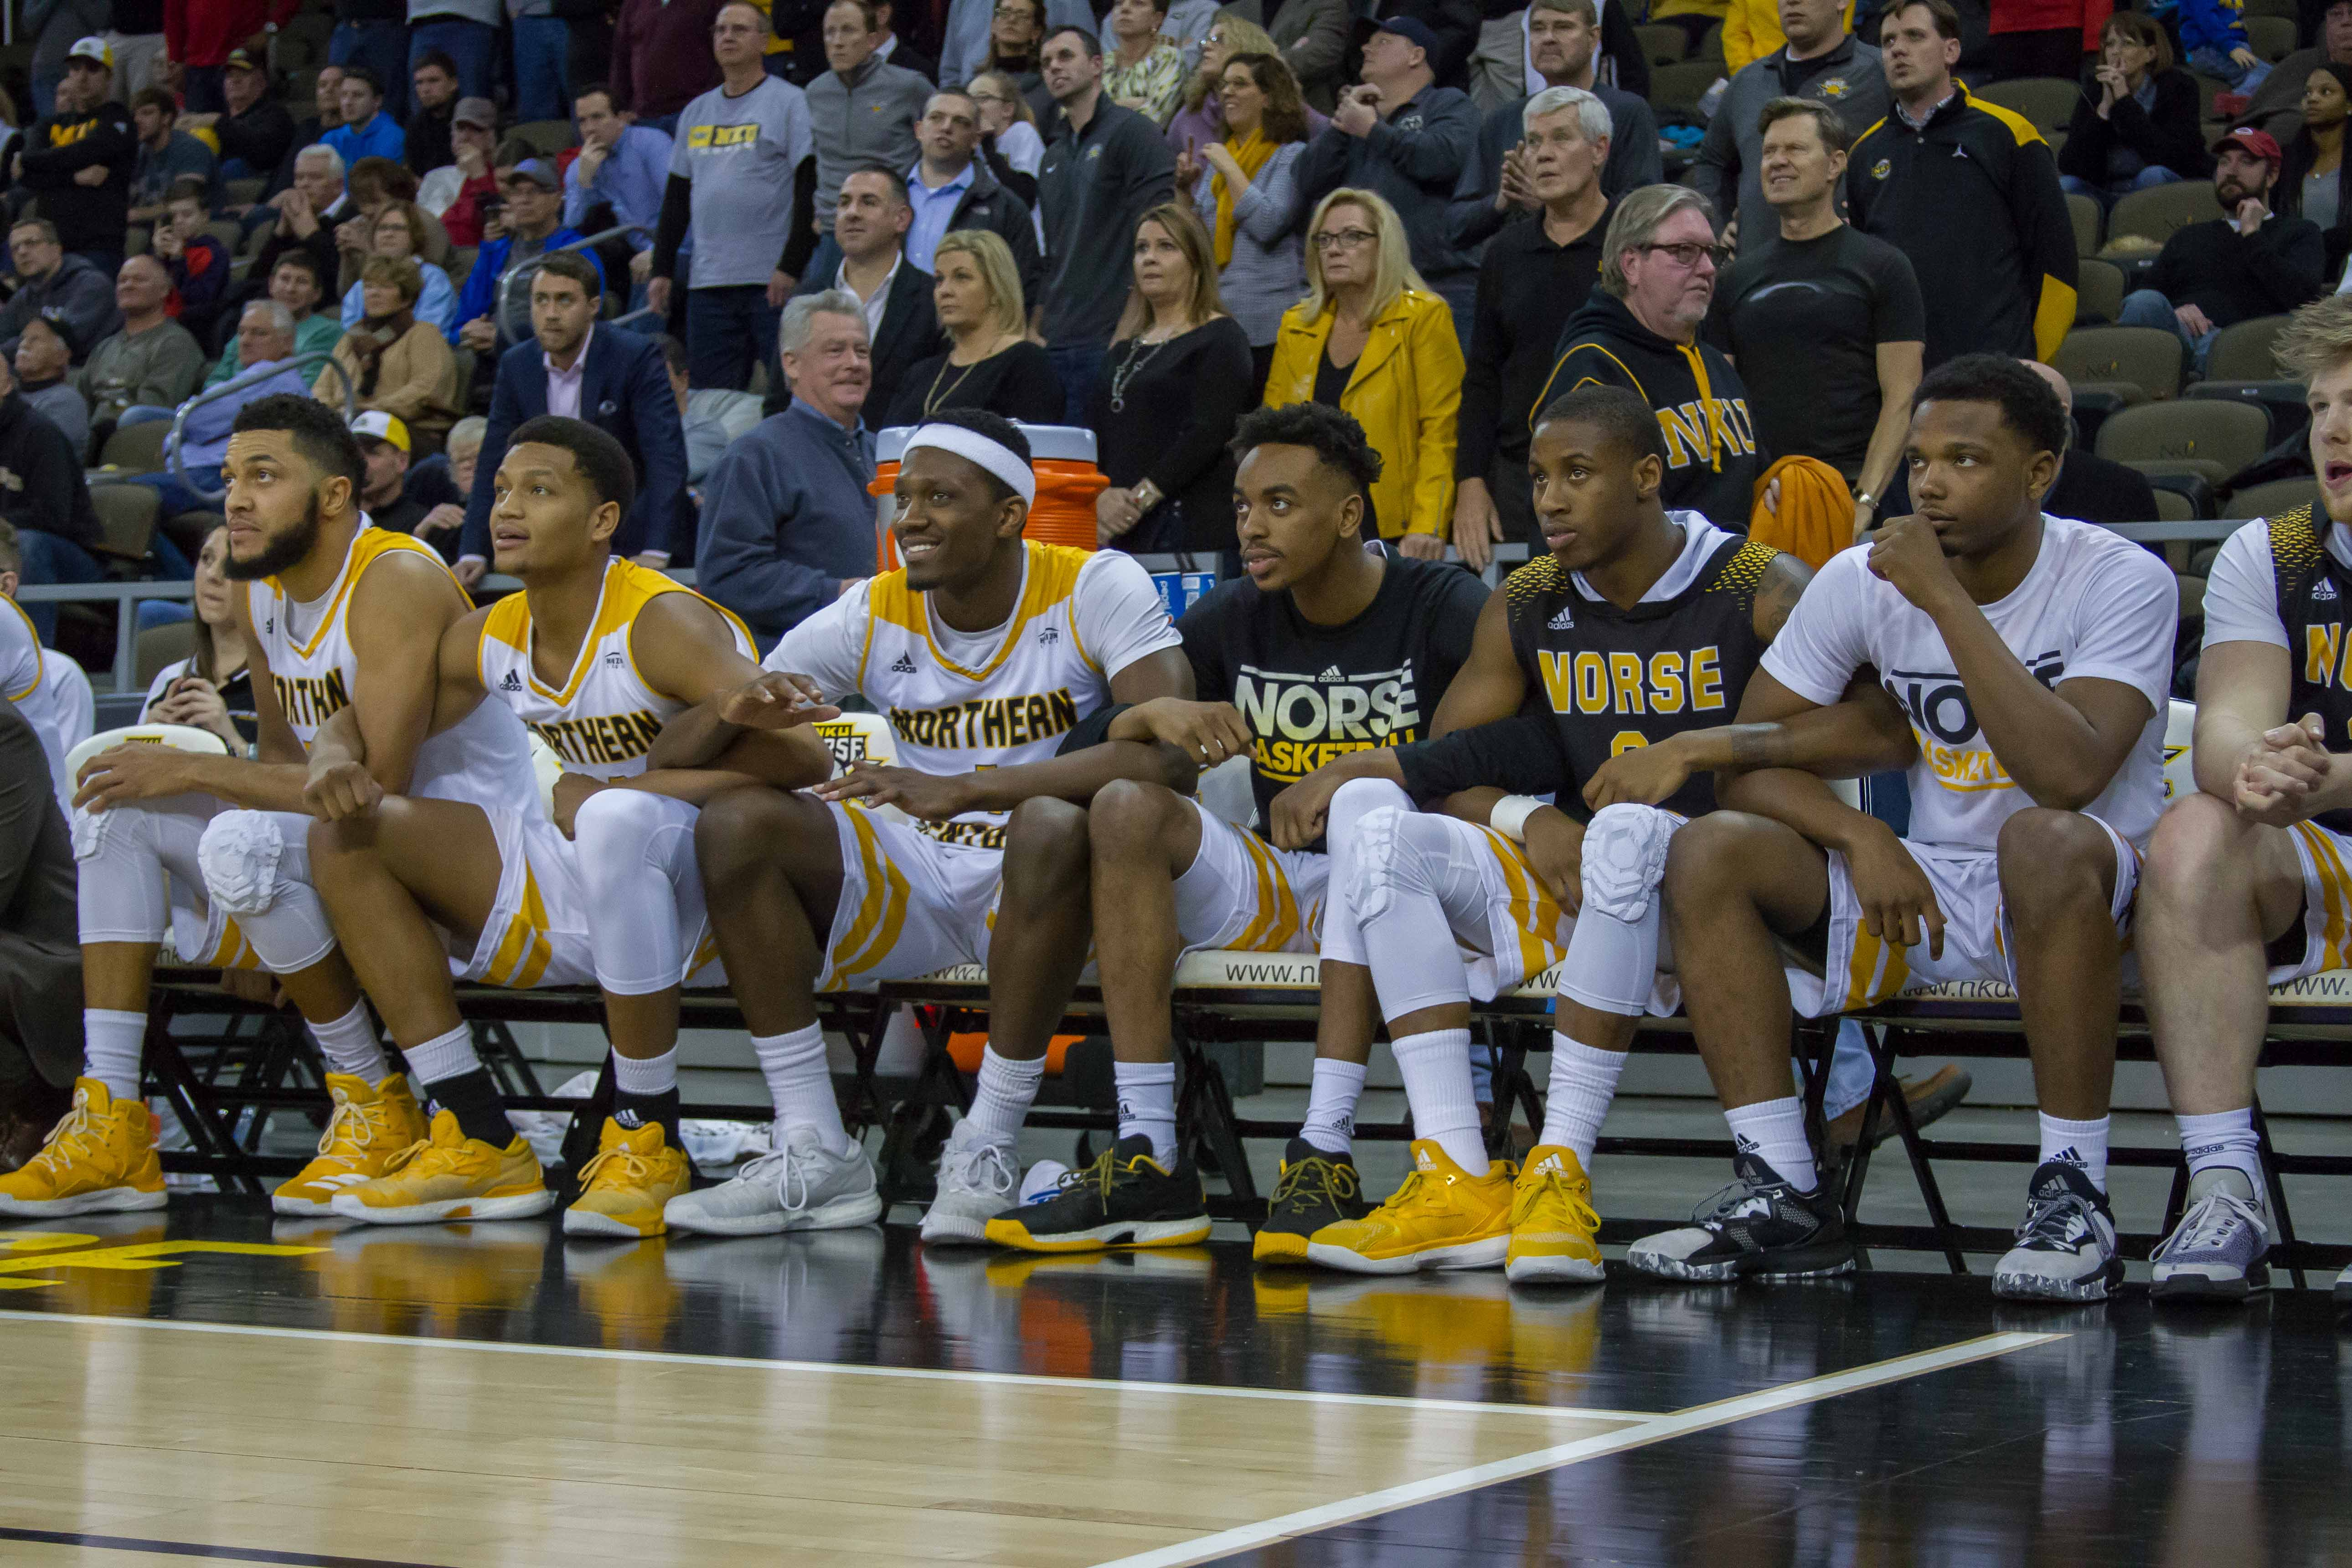 NKU drew its second-largest crowd of the season Thursday as the Norse defeated Green Bay.